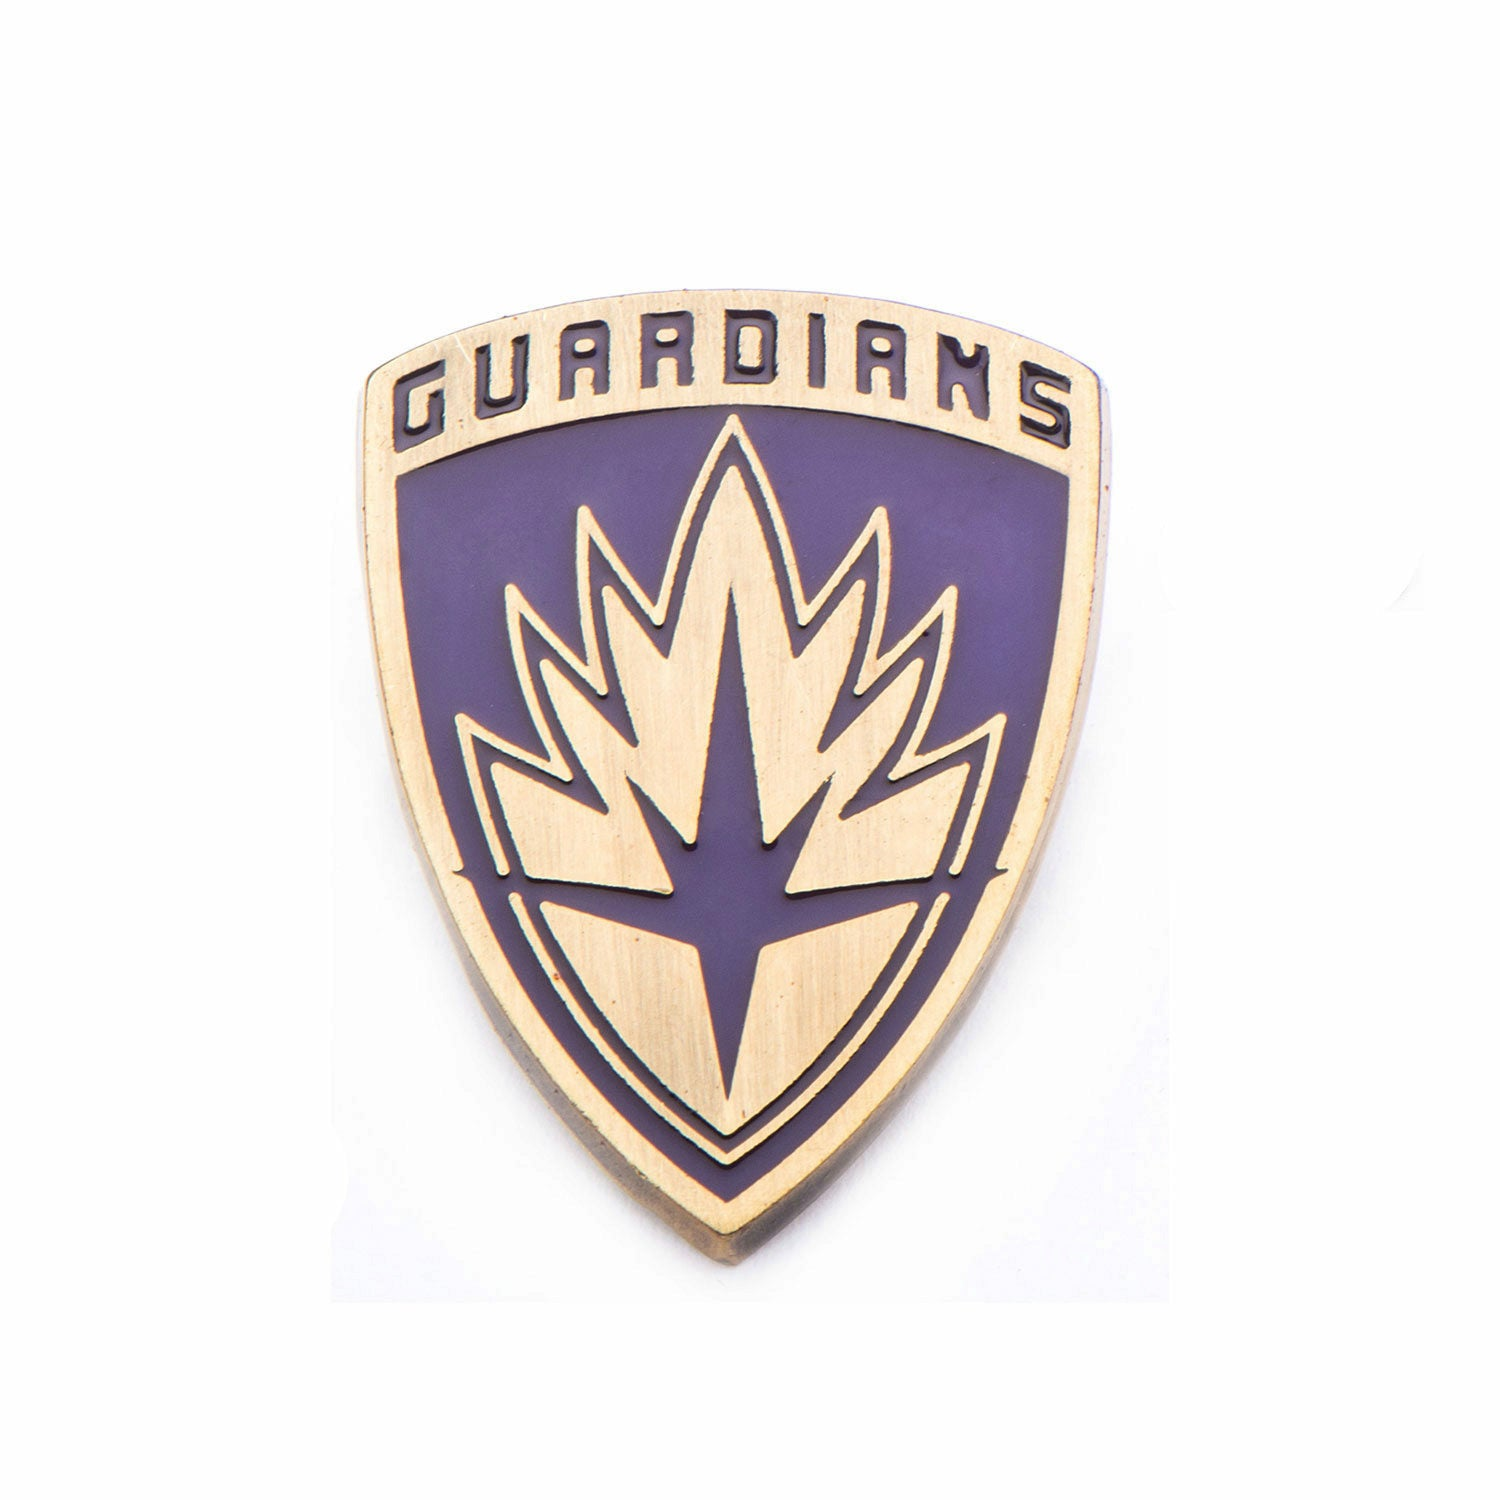 Marvel Guardians of the Galaxy Shield Base Metal Lapel Pin